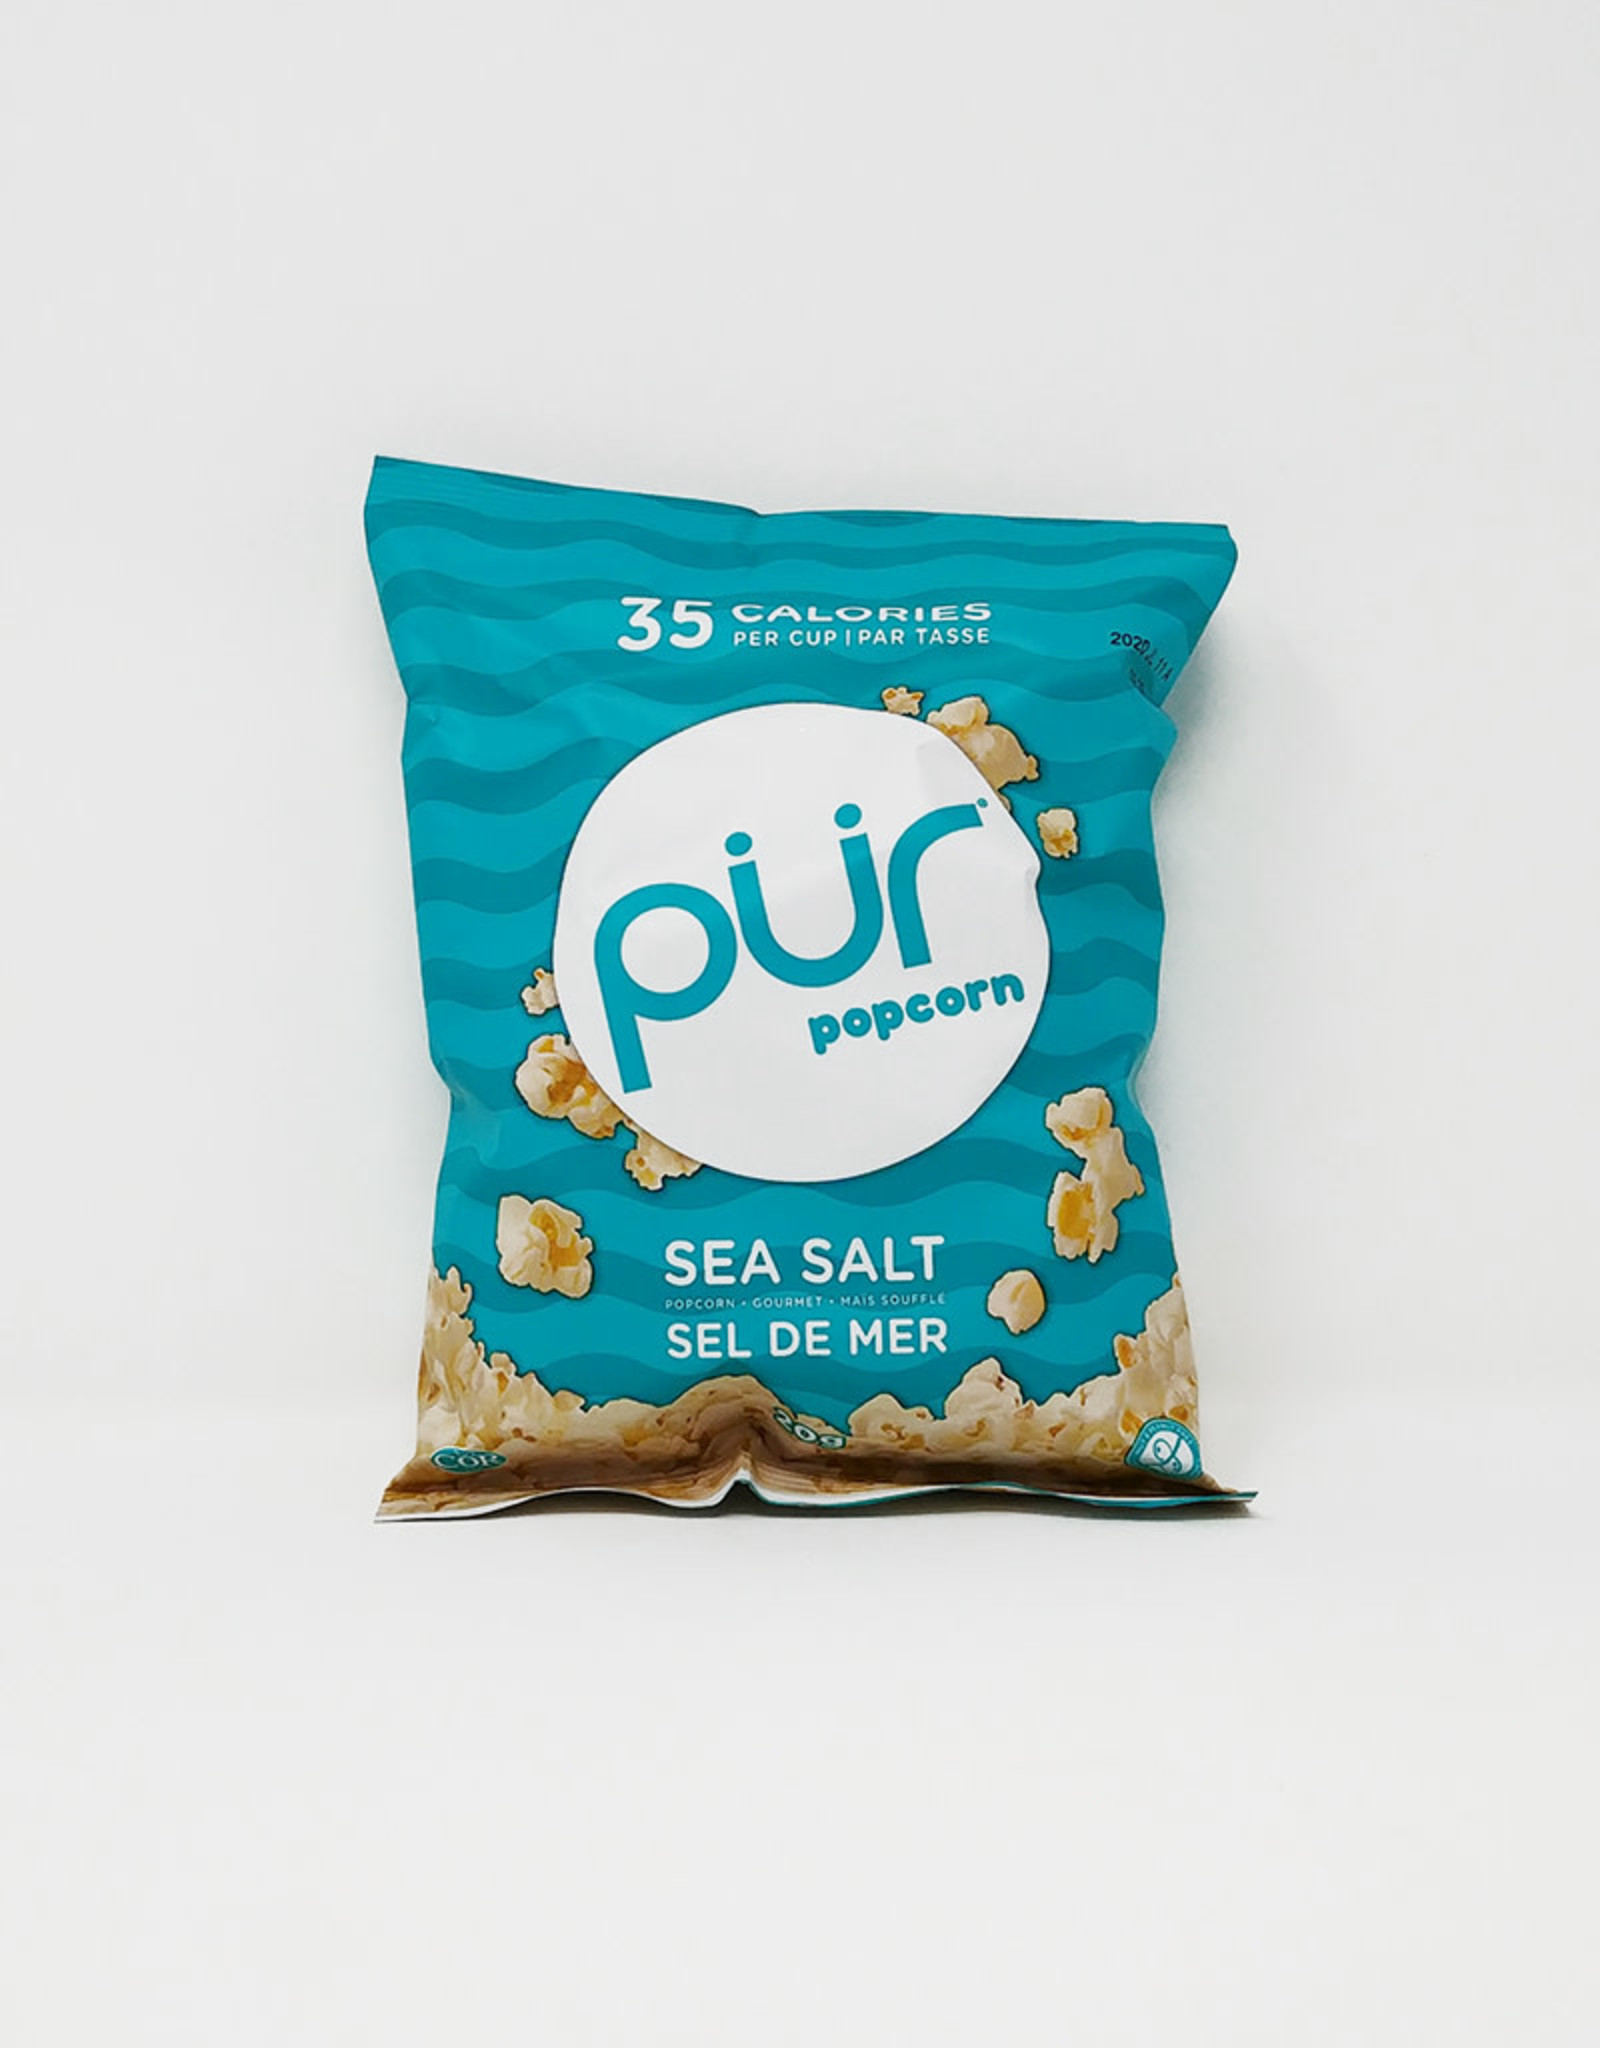 PUR PUR - Popcorn, Sea Salt (SINGLE SERVE) (20g)